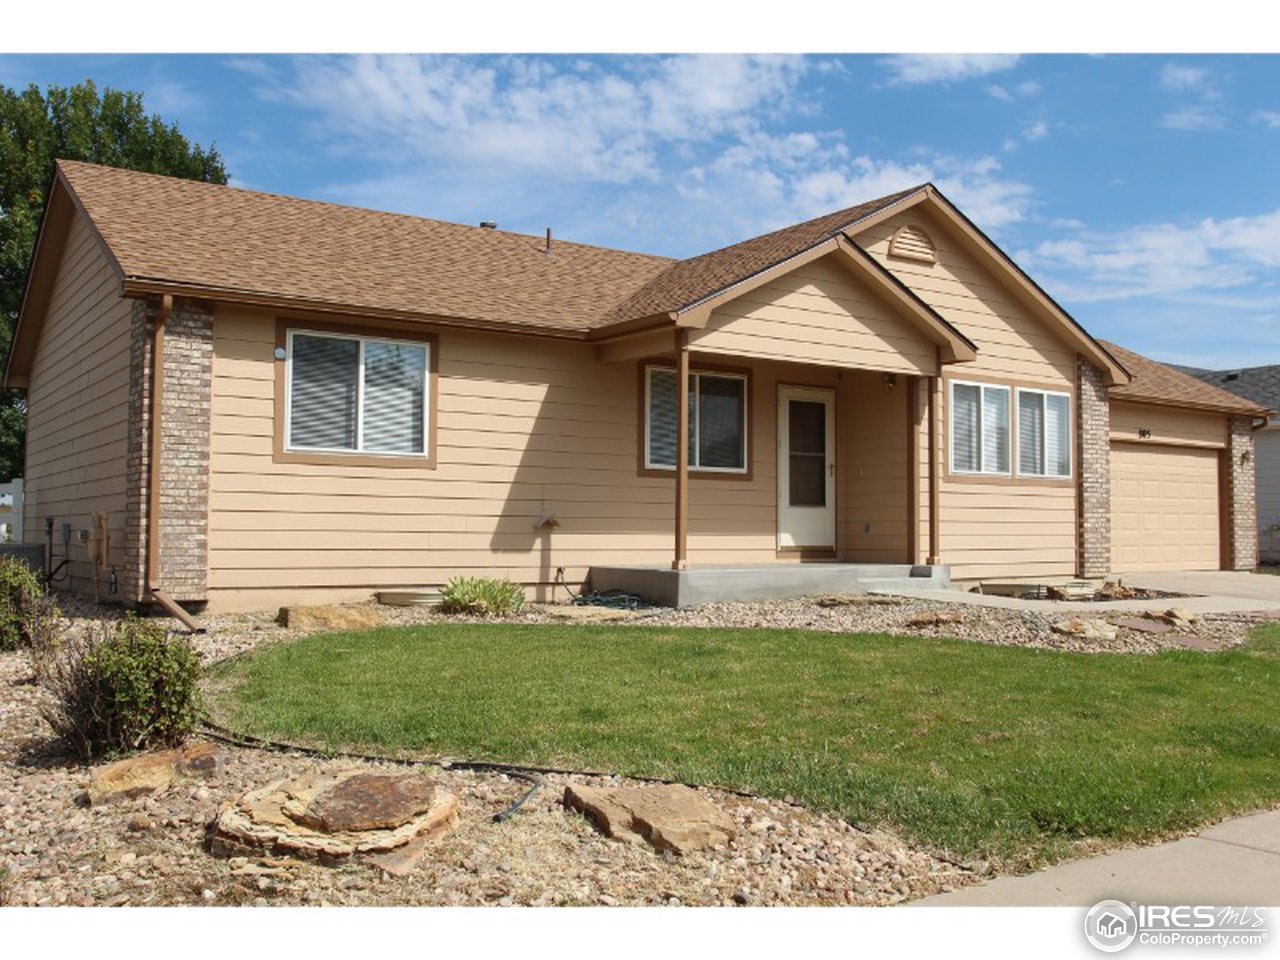 805 E 4th Street Road Loveland Home Listings - Team Cook Real Estate